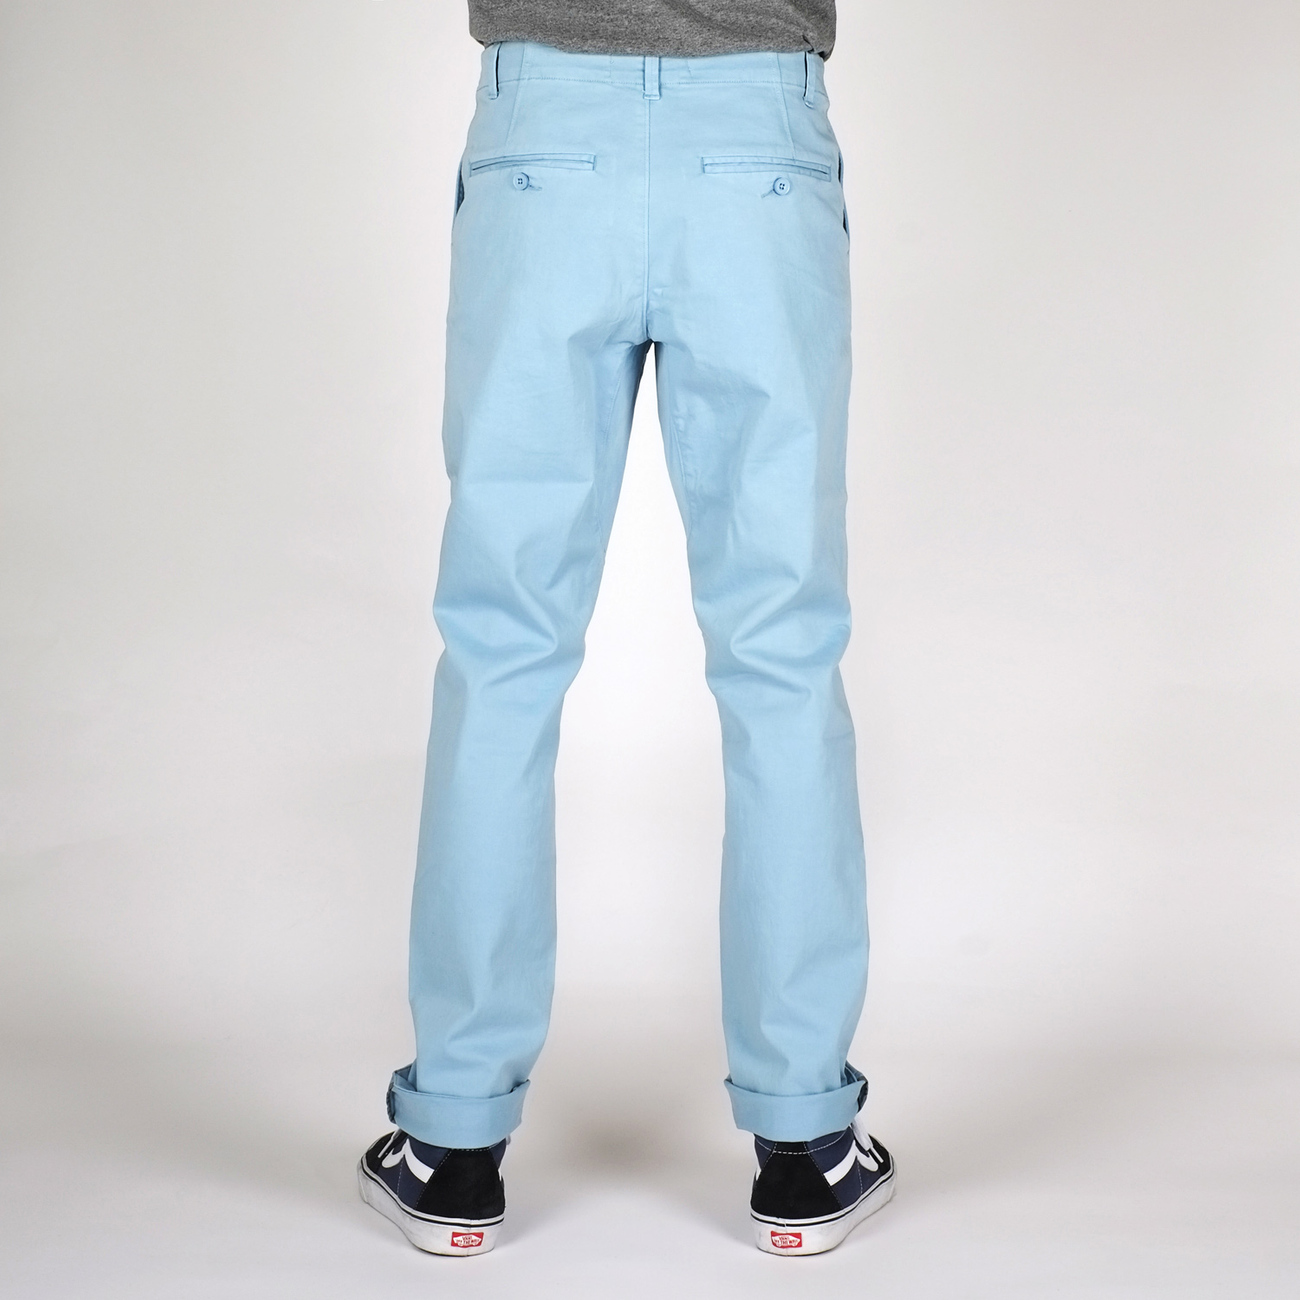 Chino Pants Sundsvall Light Blue